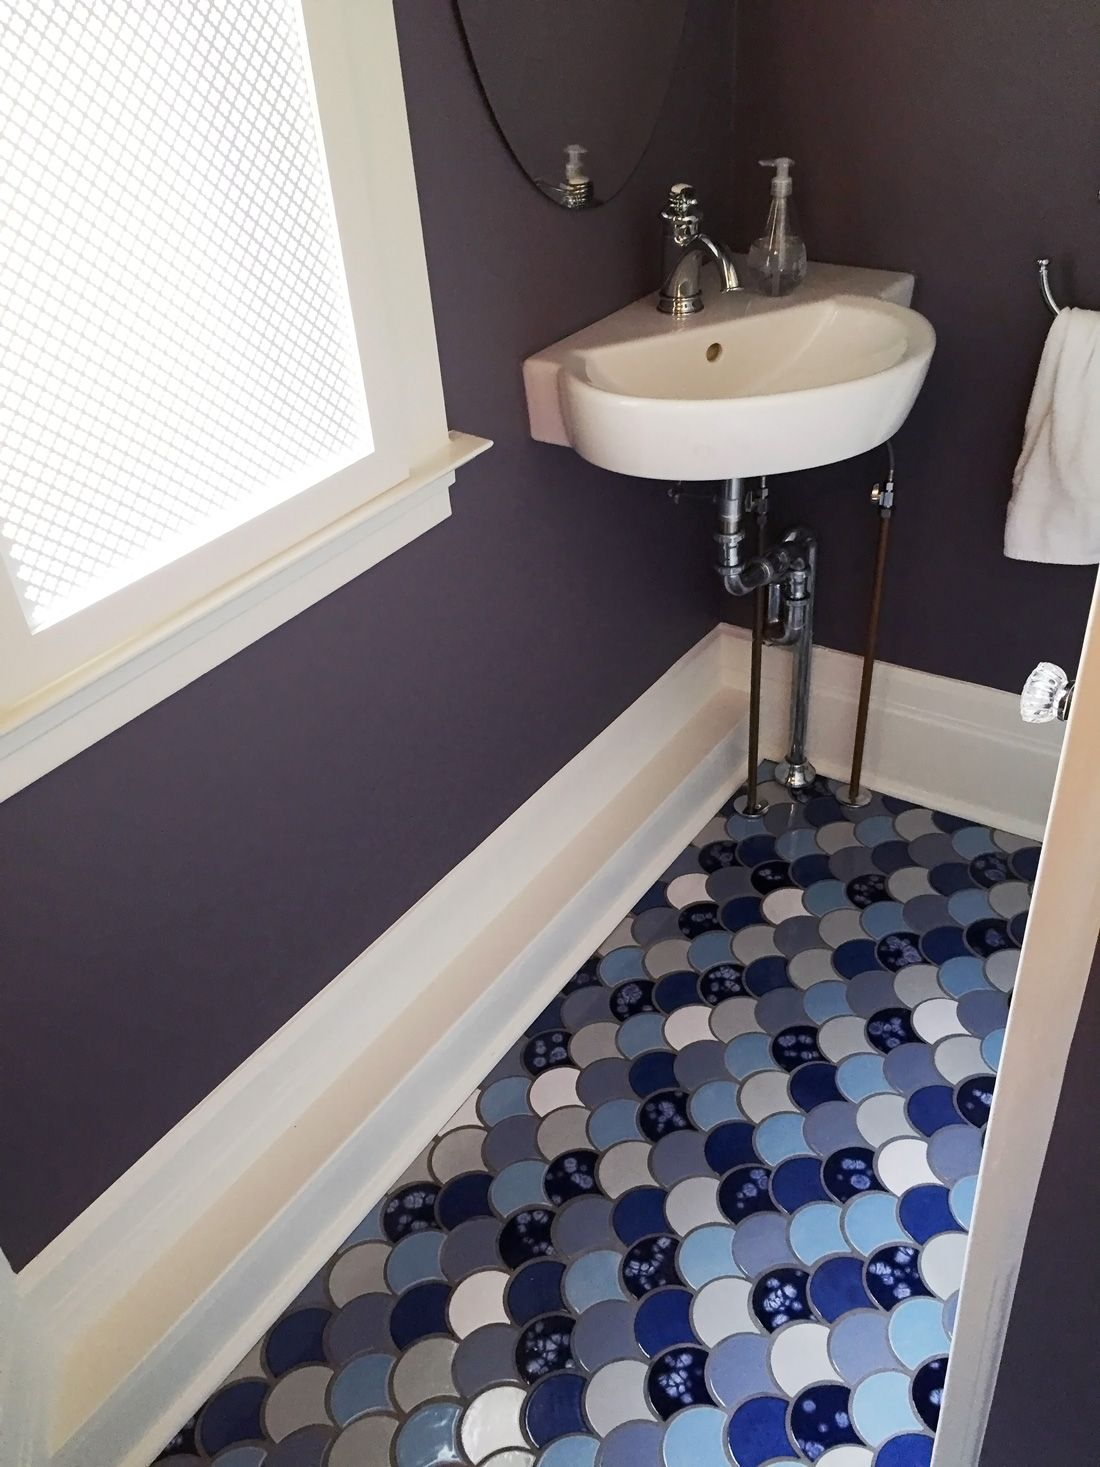 Fish tiles bathroom - How To Tile A Small Space View Our Blog To See Other Ideas For How